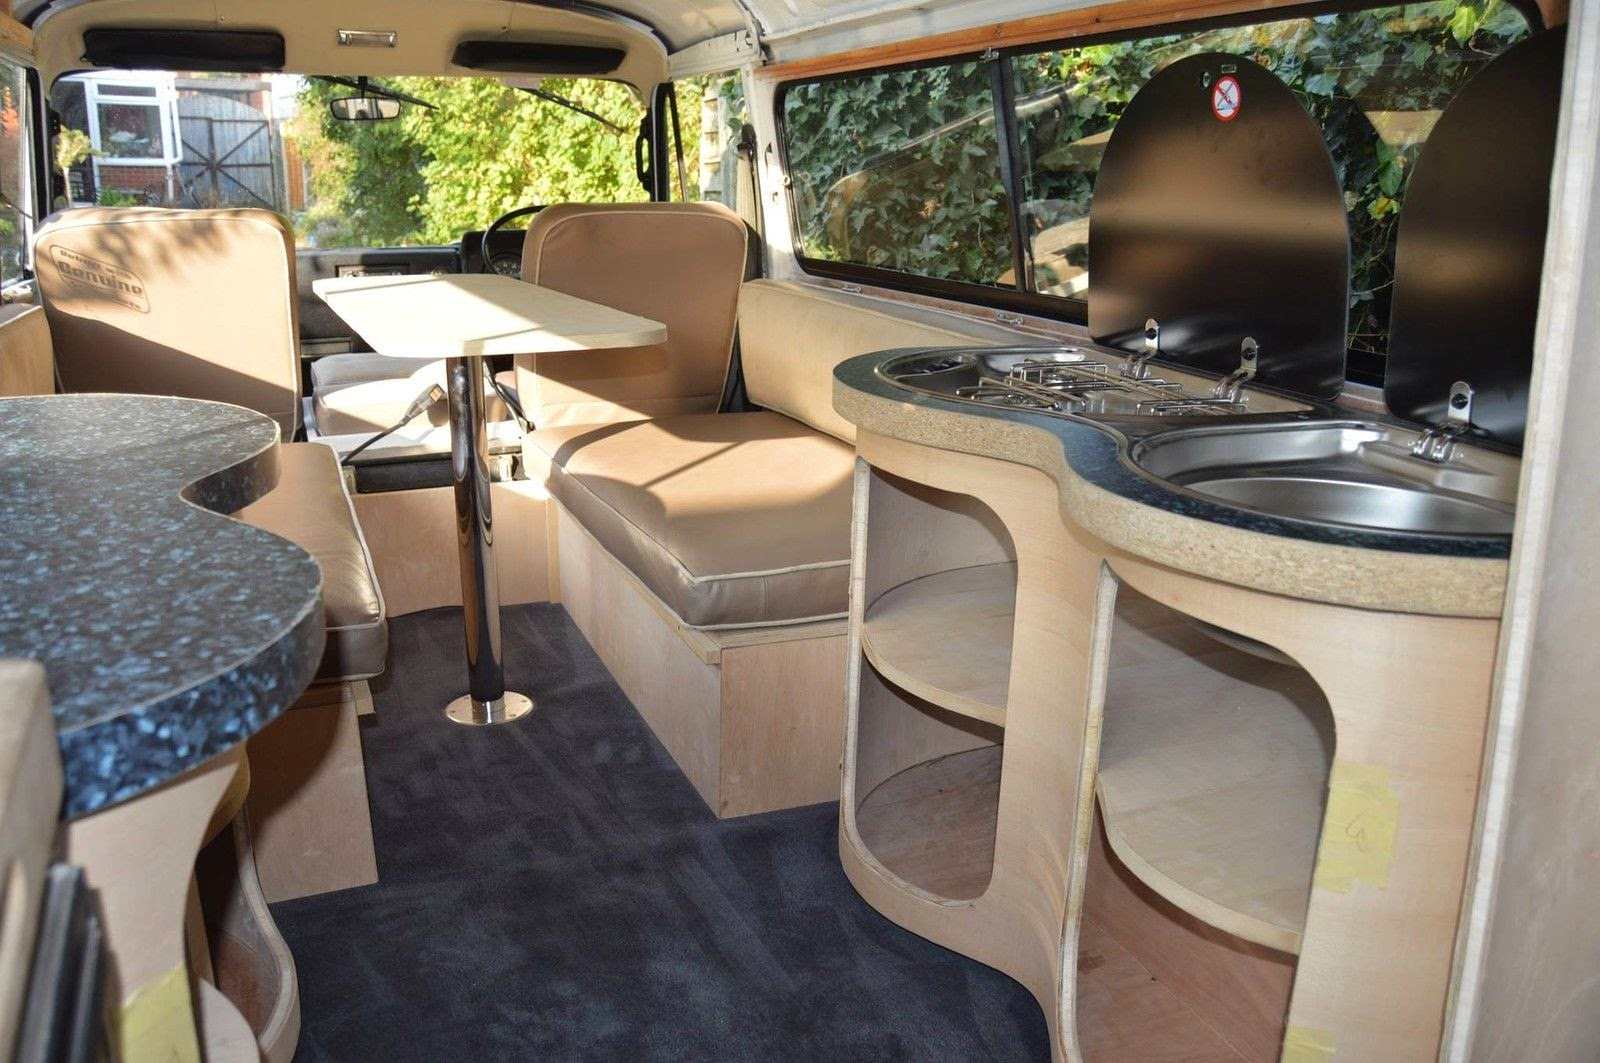 Used Rvs 1983 Dodge Commer Spacevan Small Rv For Sale For